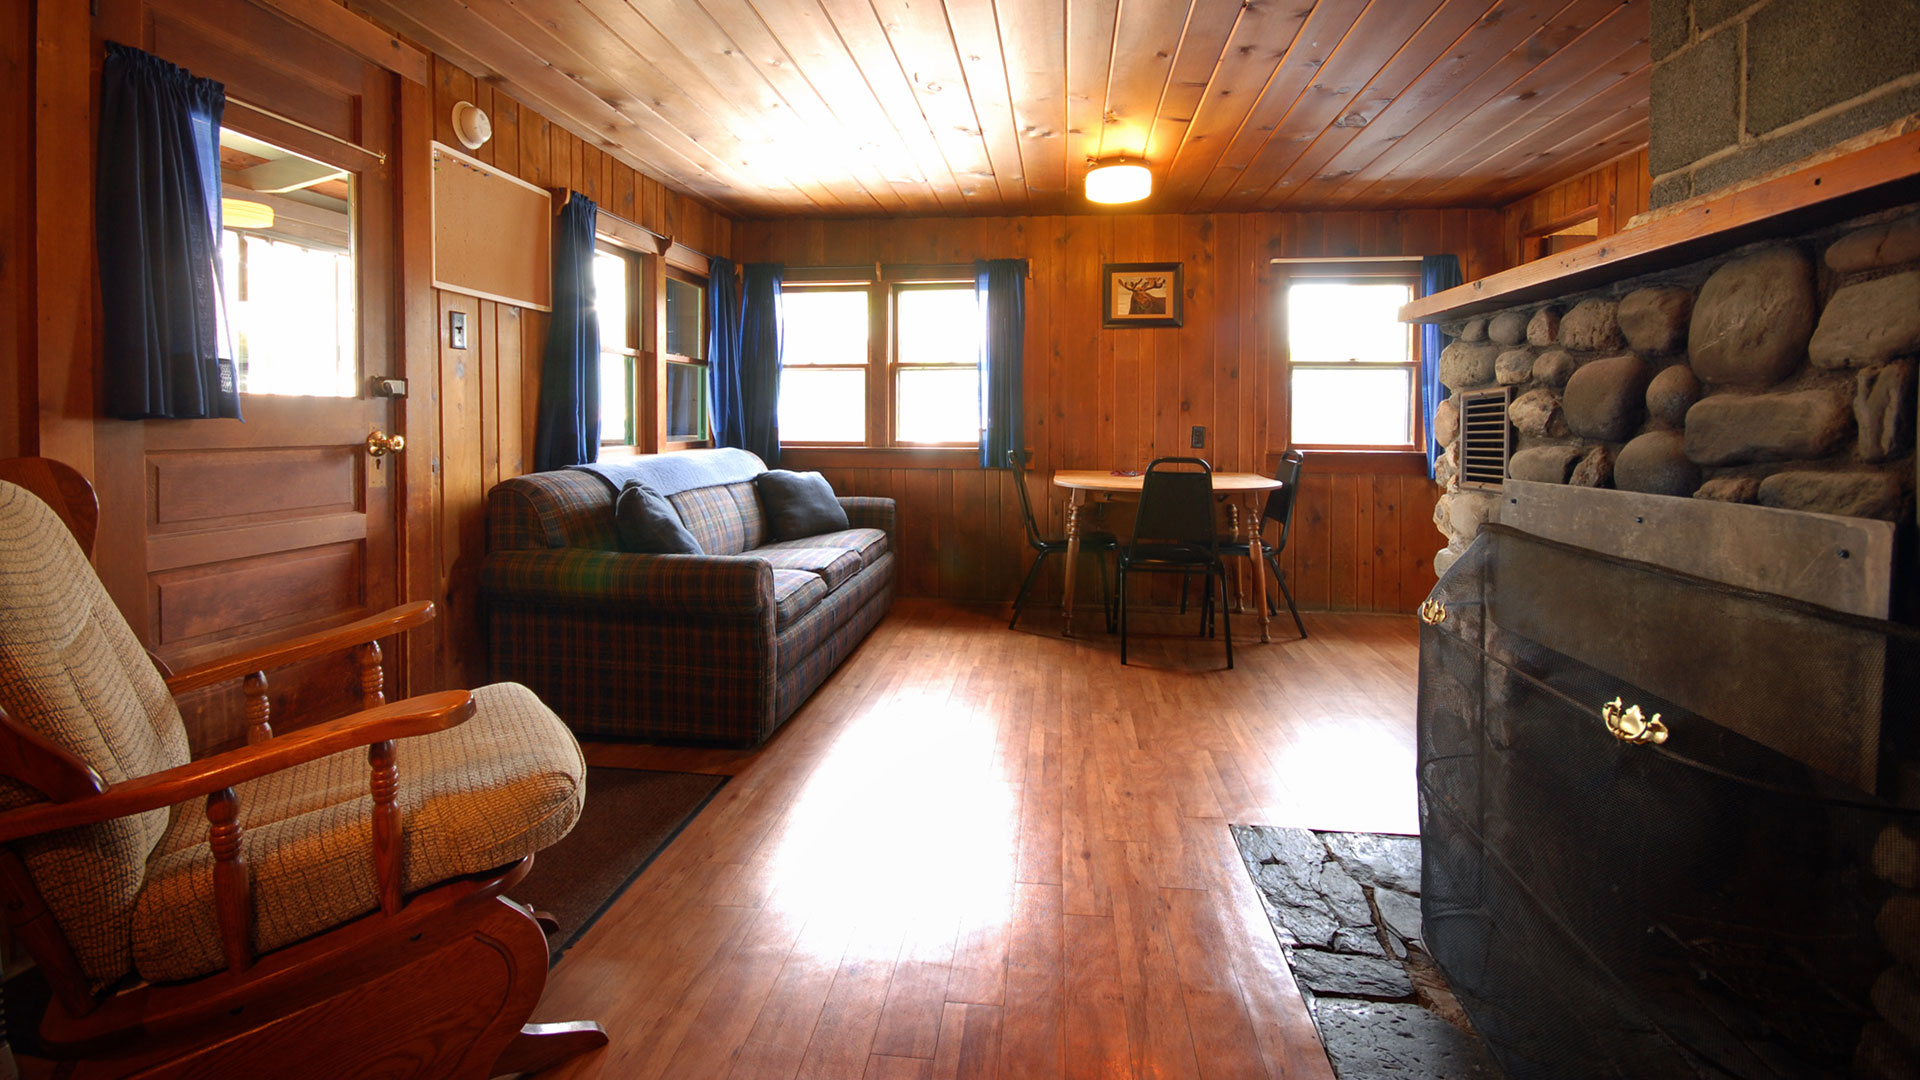 inside nh resort gallery setup in shawnee maine cabins photos mountain cabin pleasant ski rentals photo galleries peak